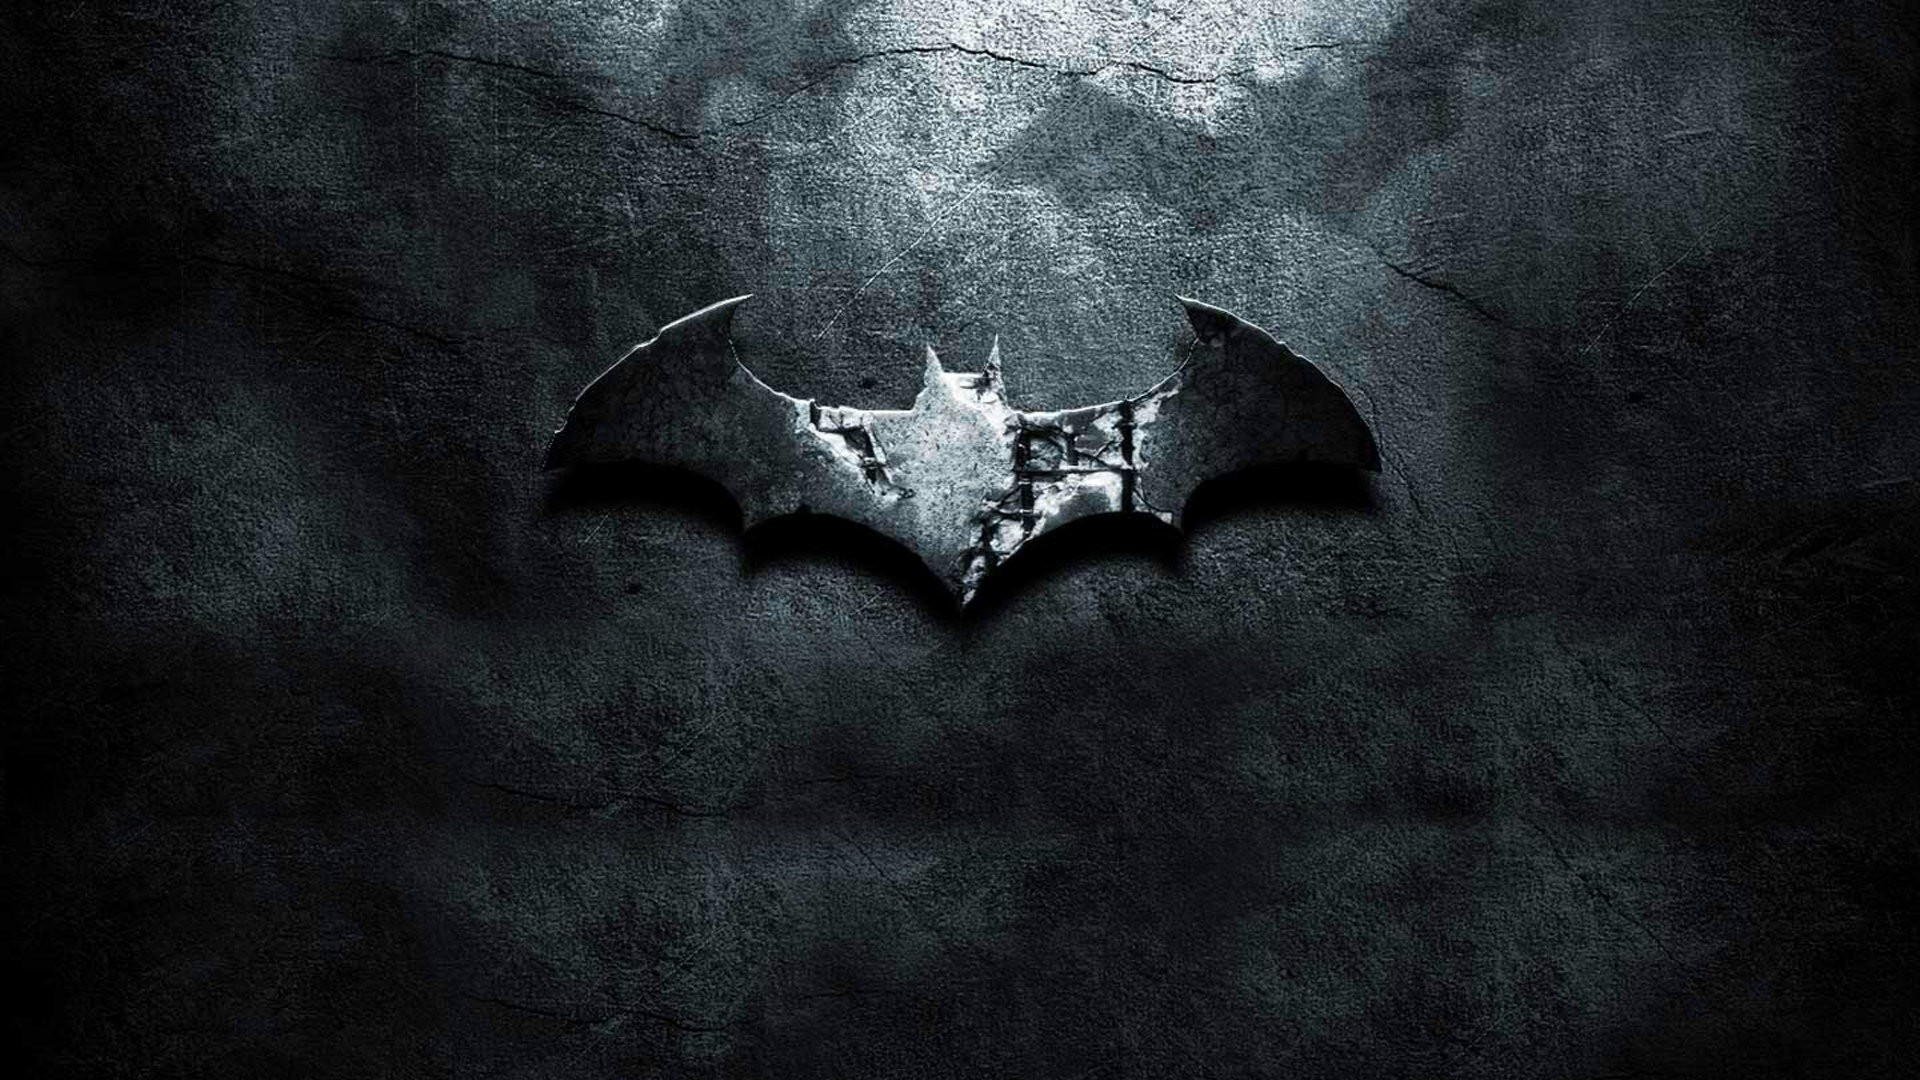 Batman Batman Logo artwork digital art